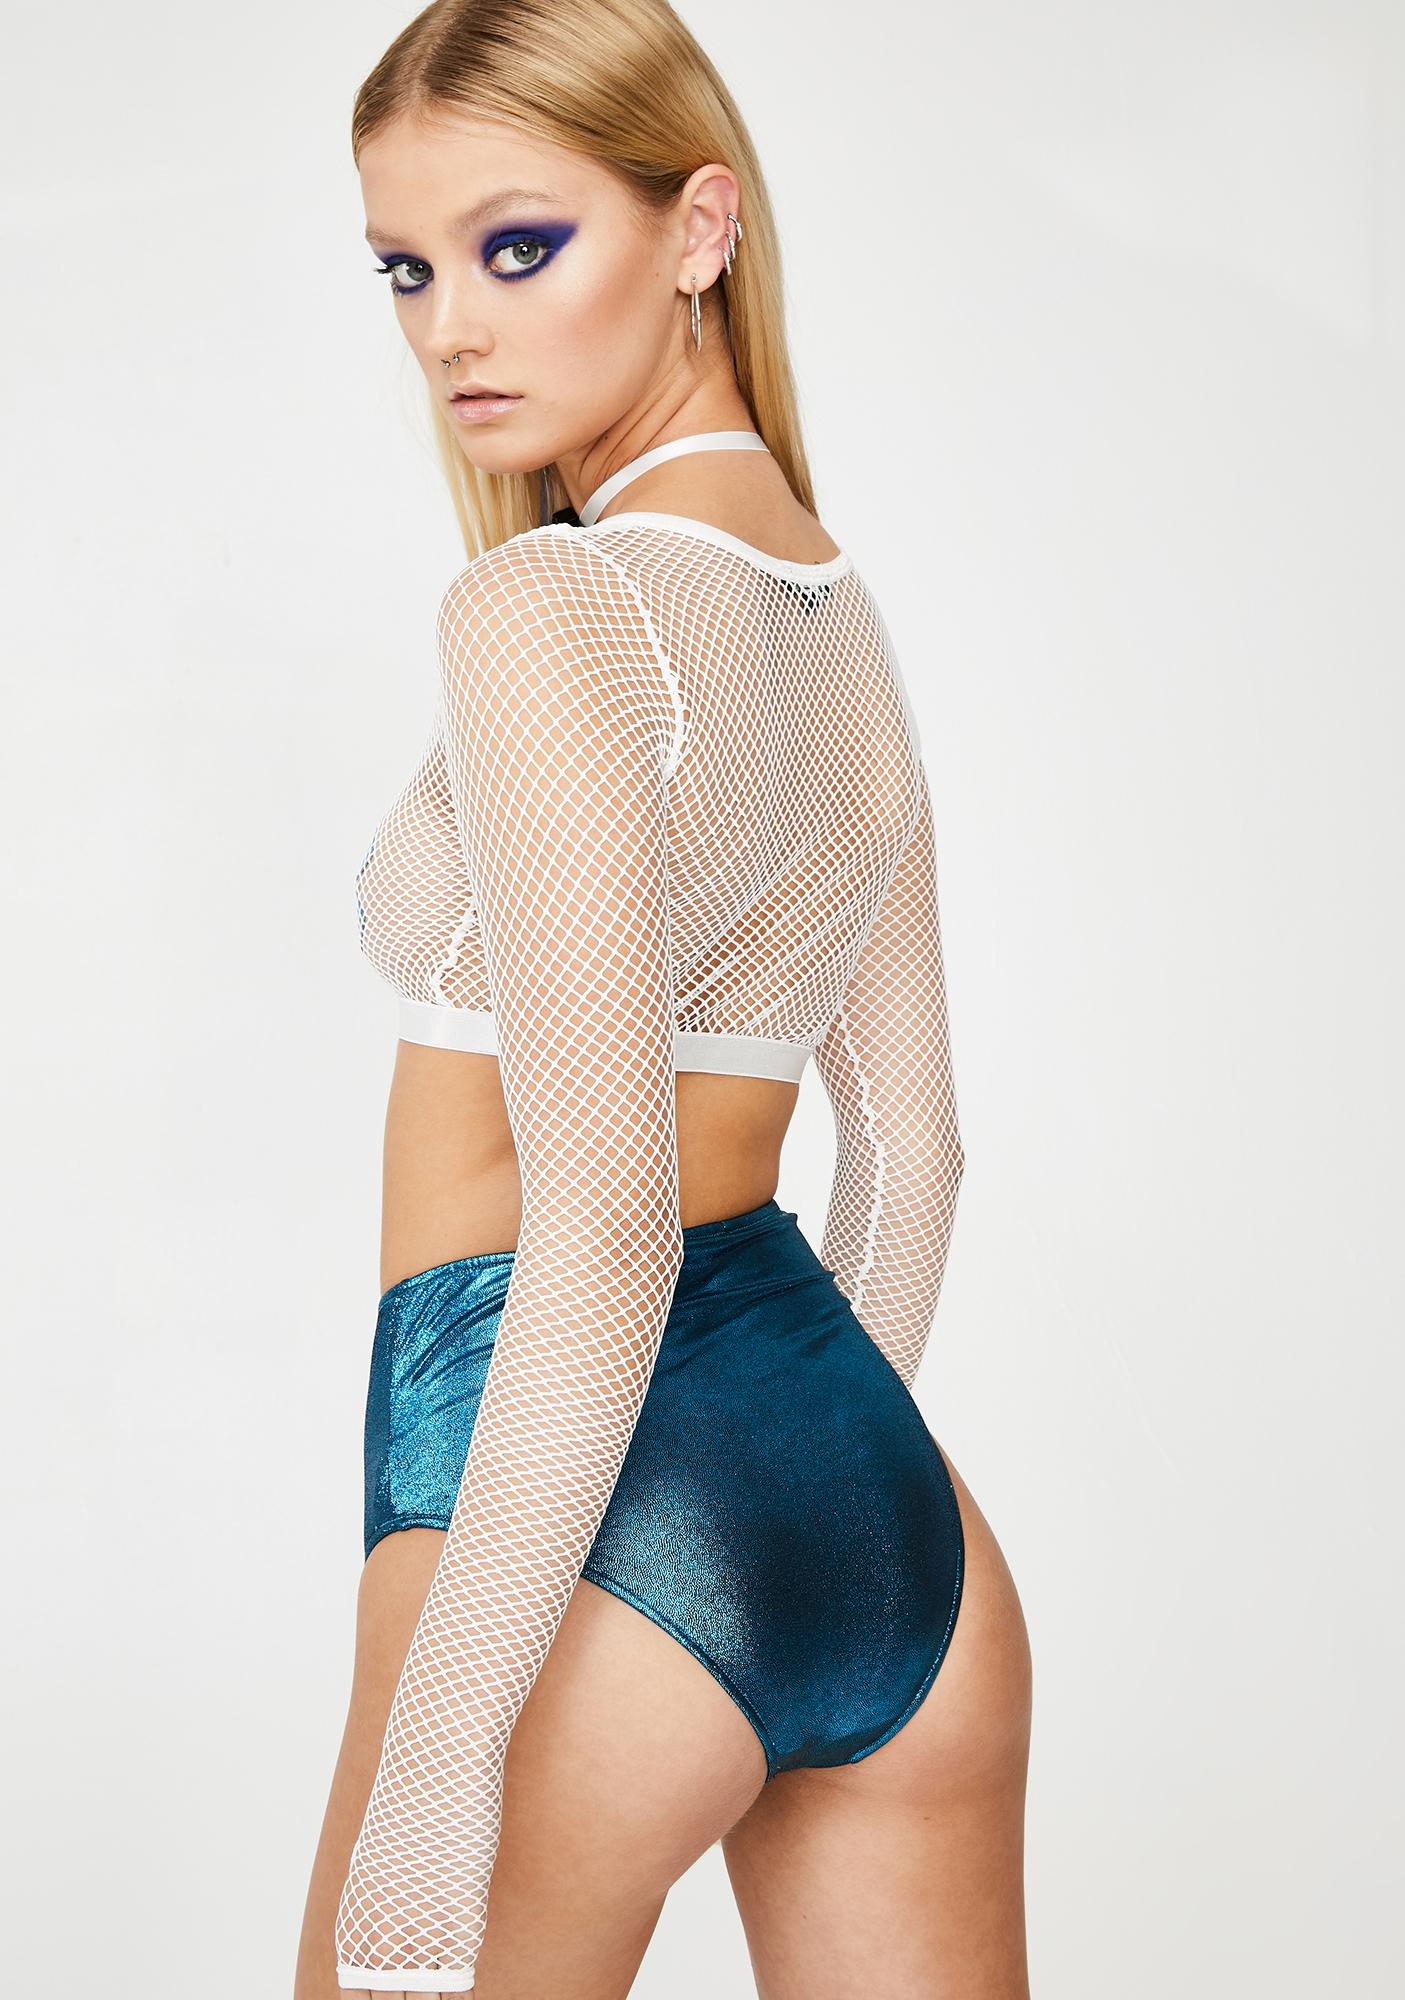 Club Exx Angelic Tempo Fishnet Crop Top